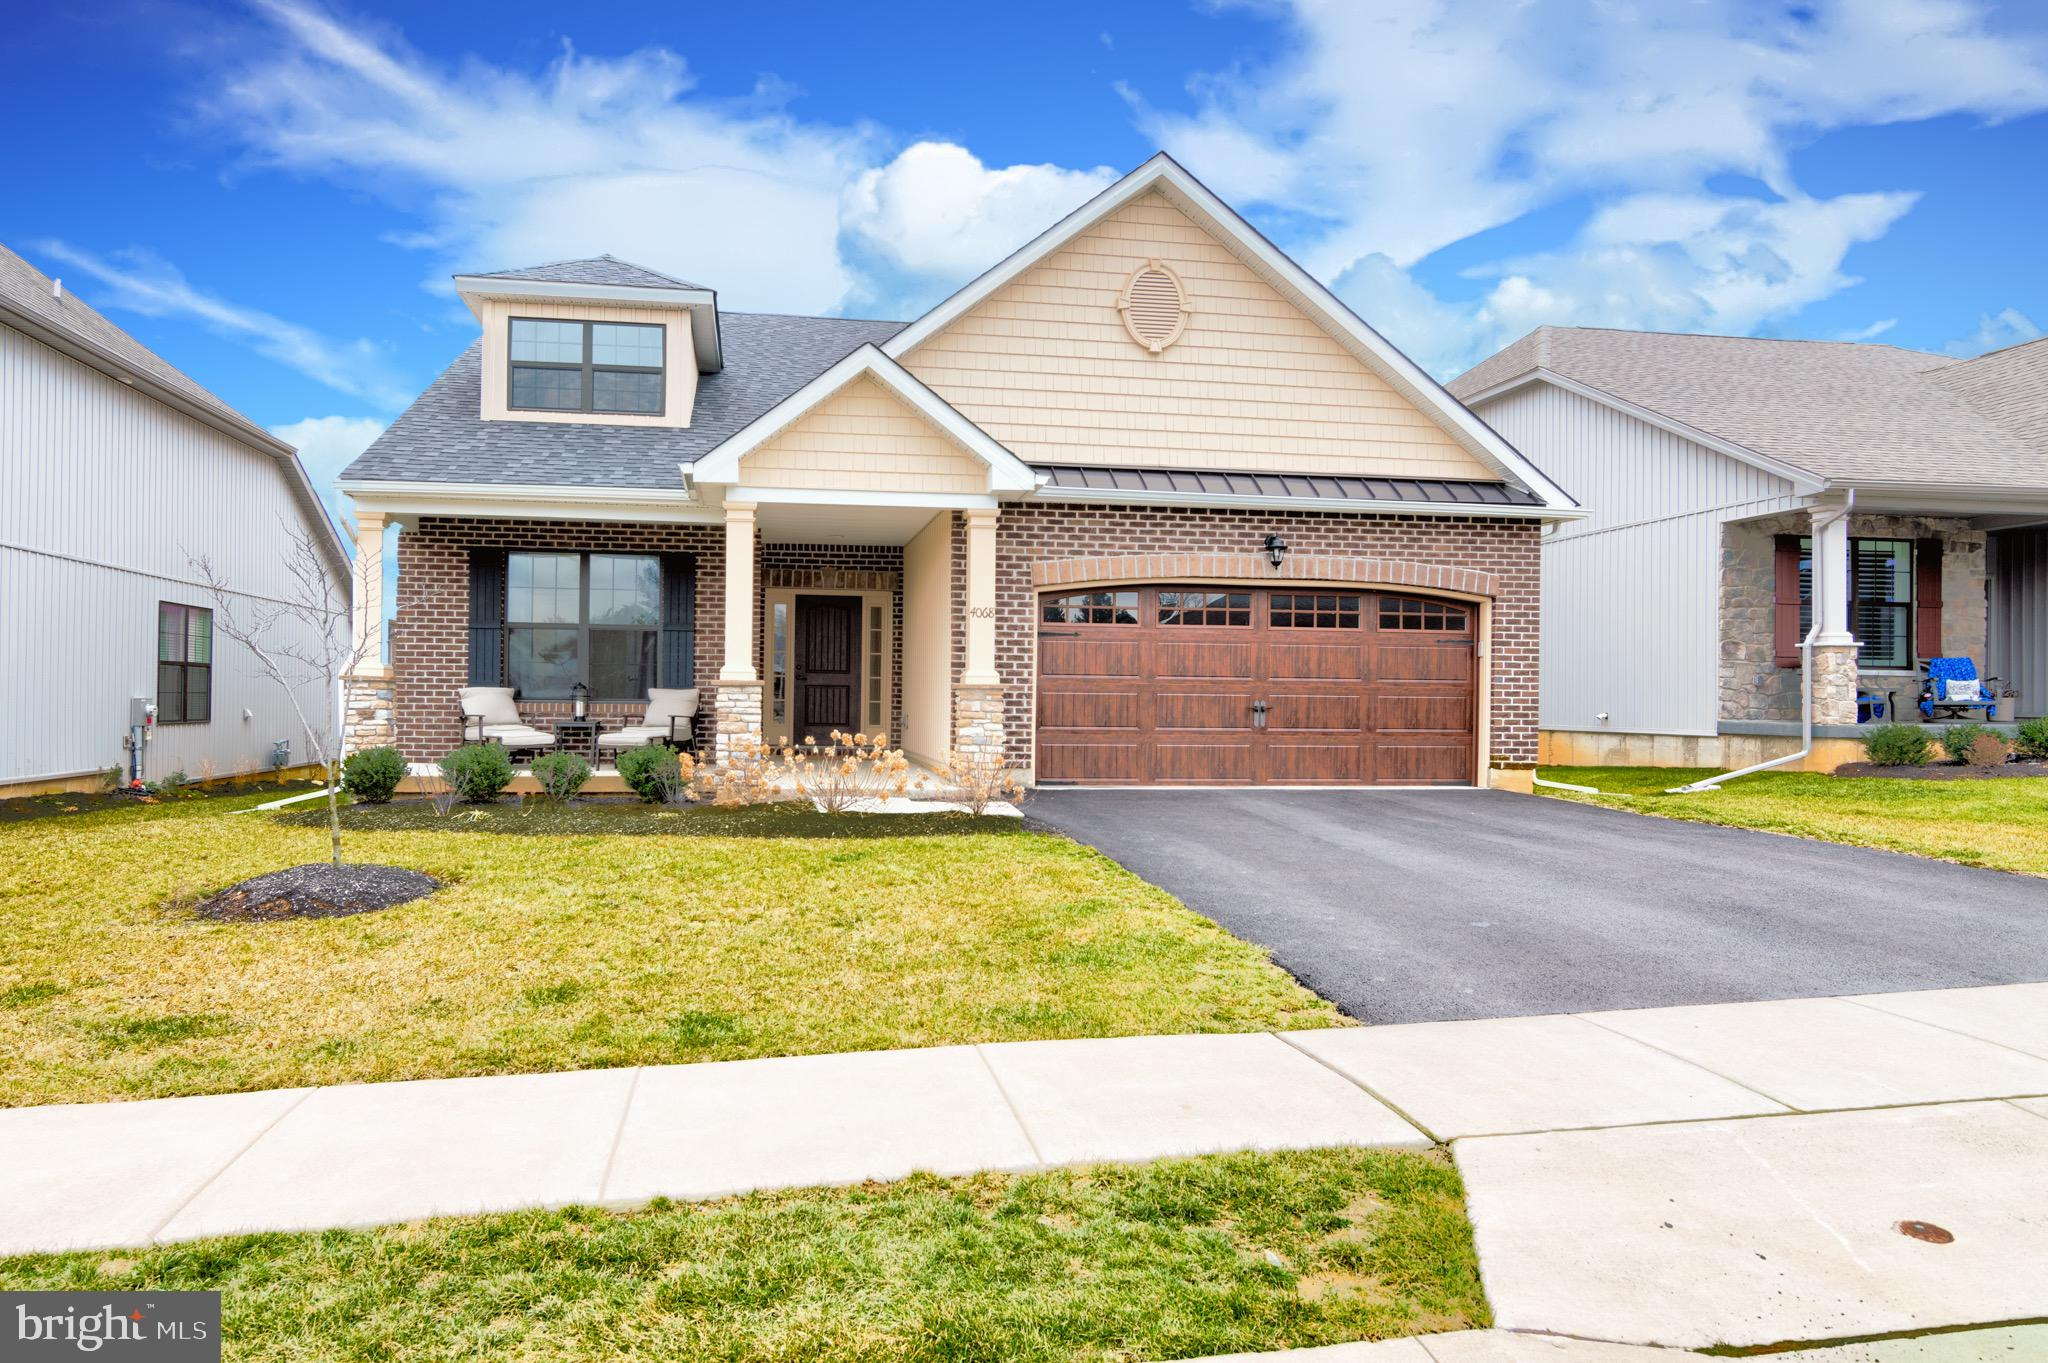 4068 CLEARBROOK ROAD, EMMAUS, PA 18049